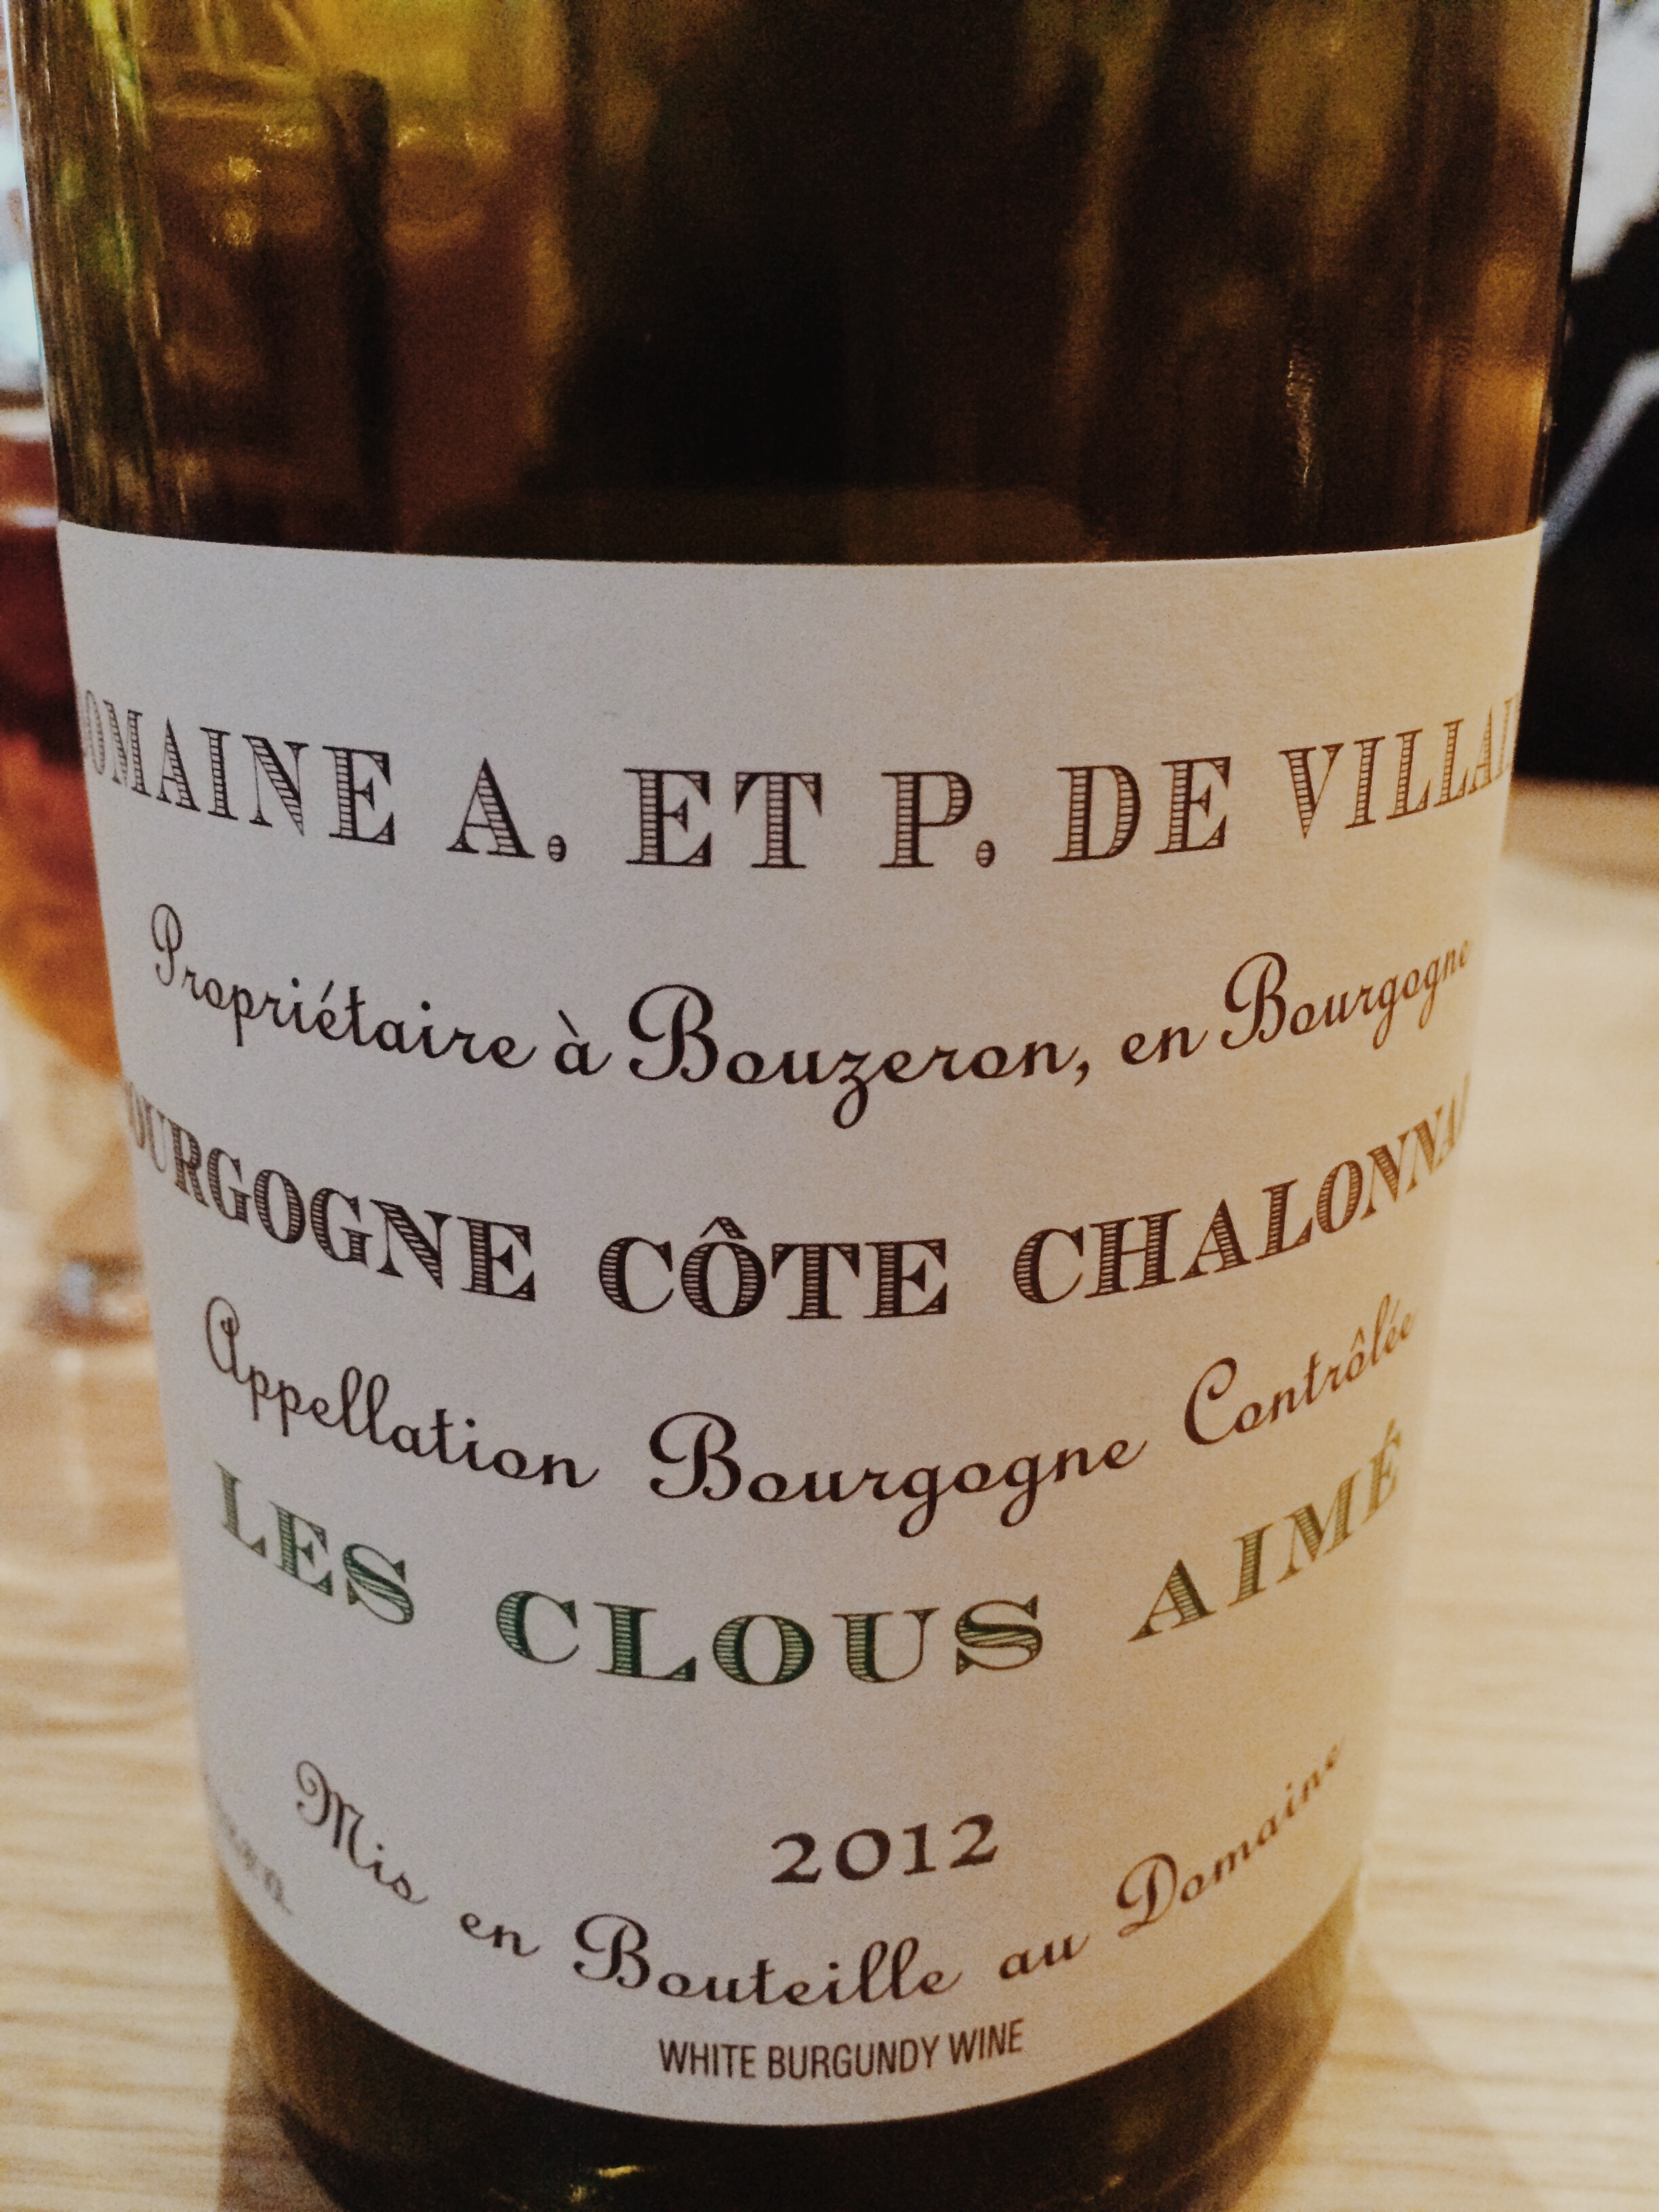 Robert Bohr and the wine guys at CB are firm believers in White Burgundy.